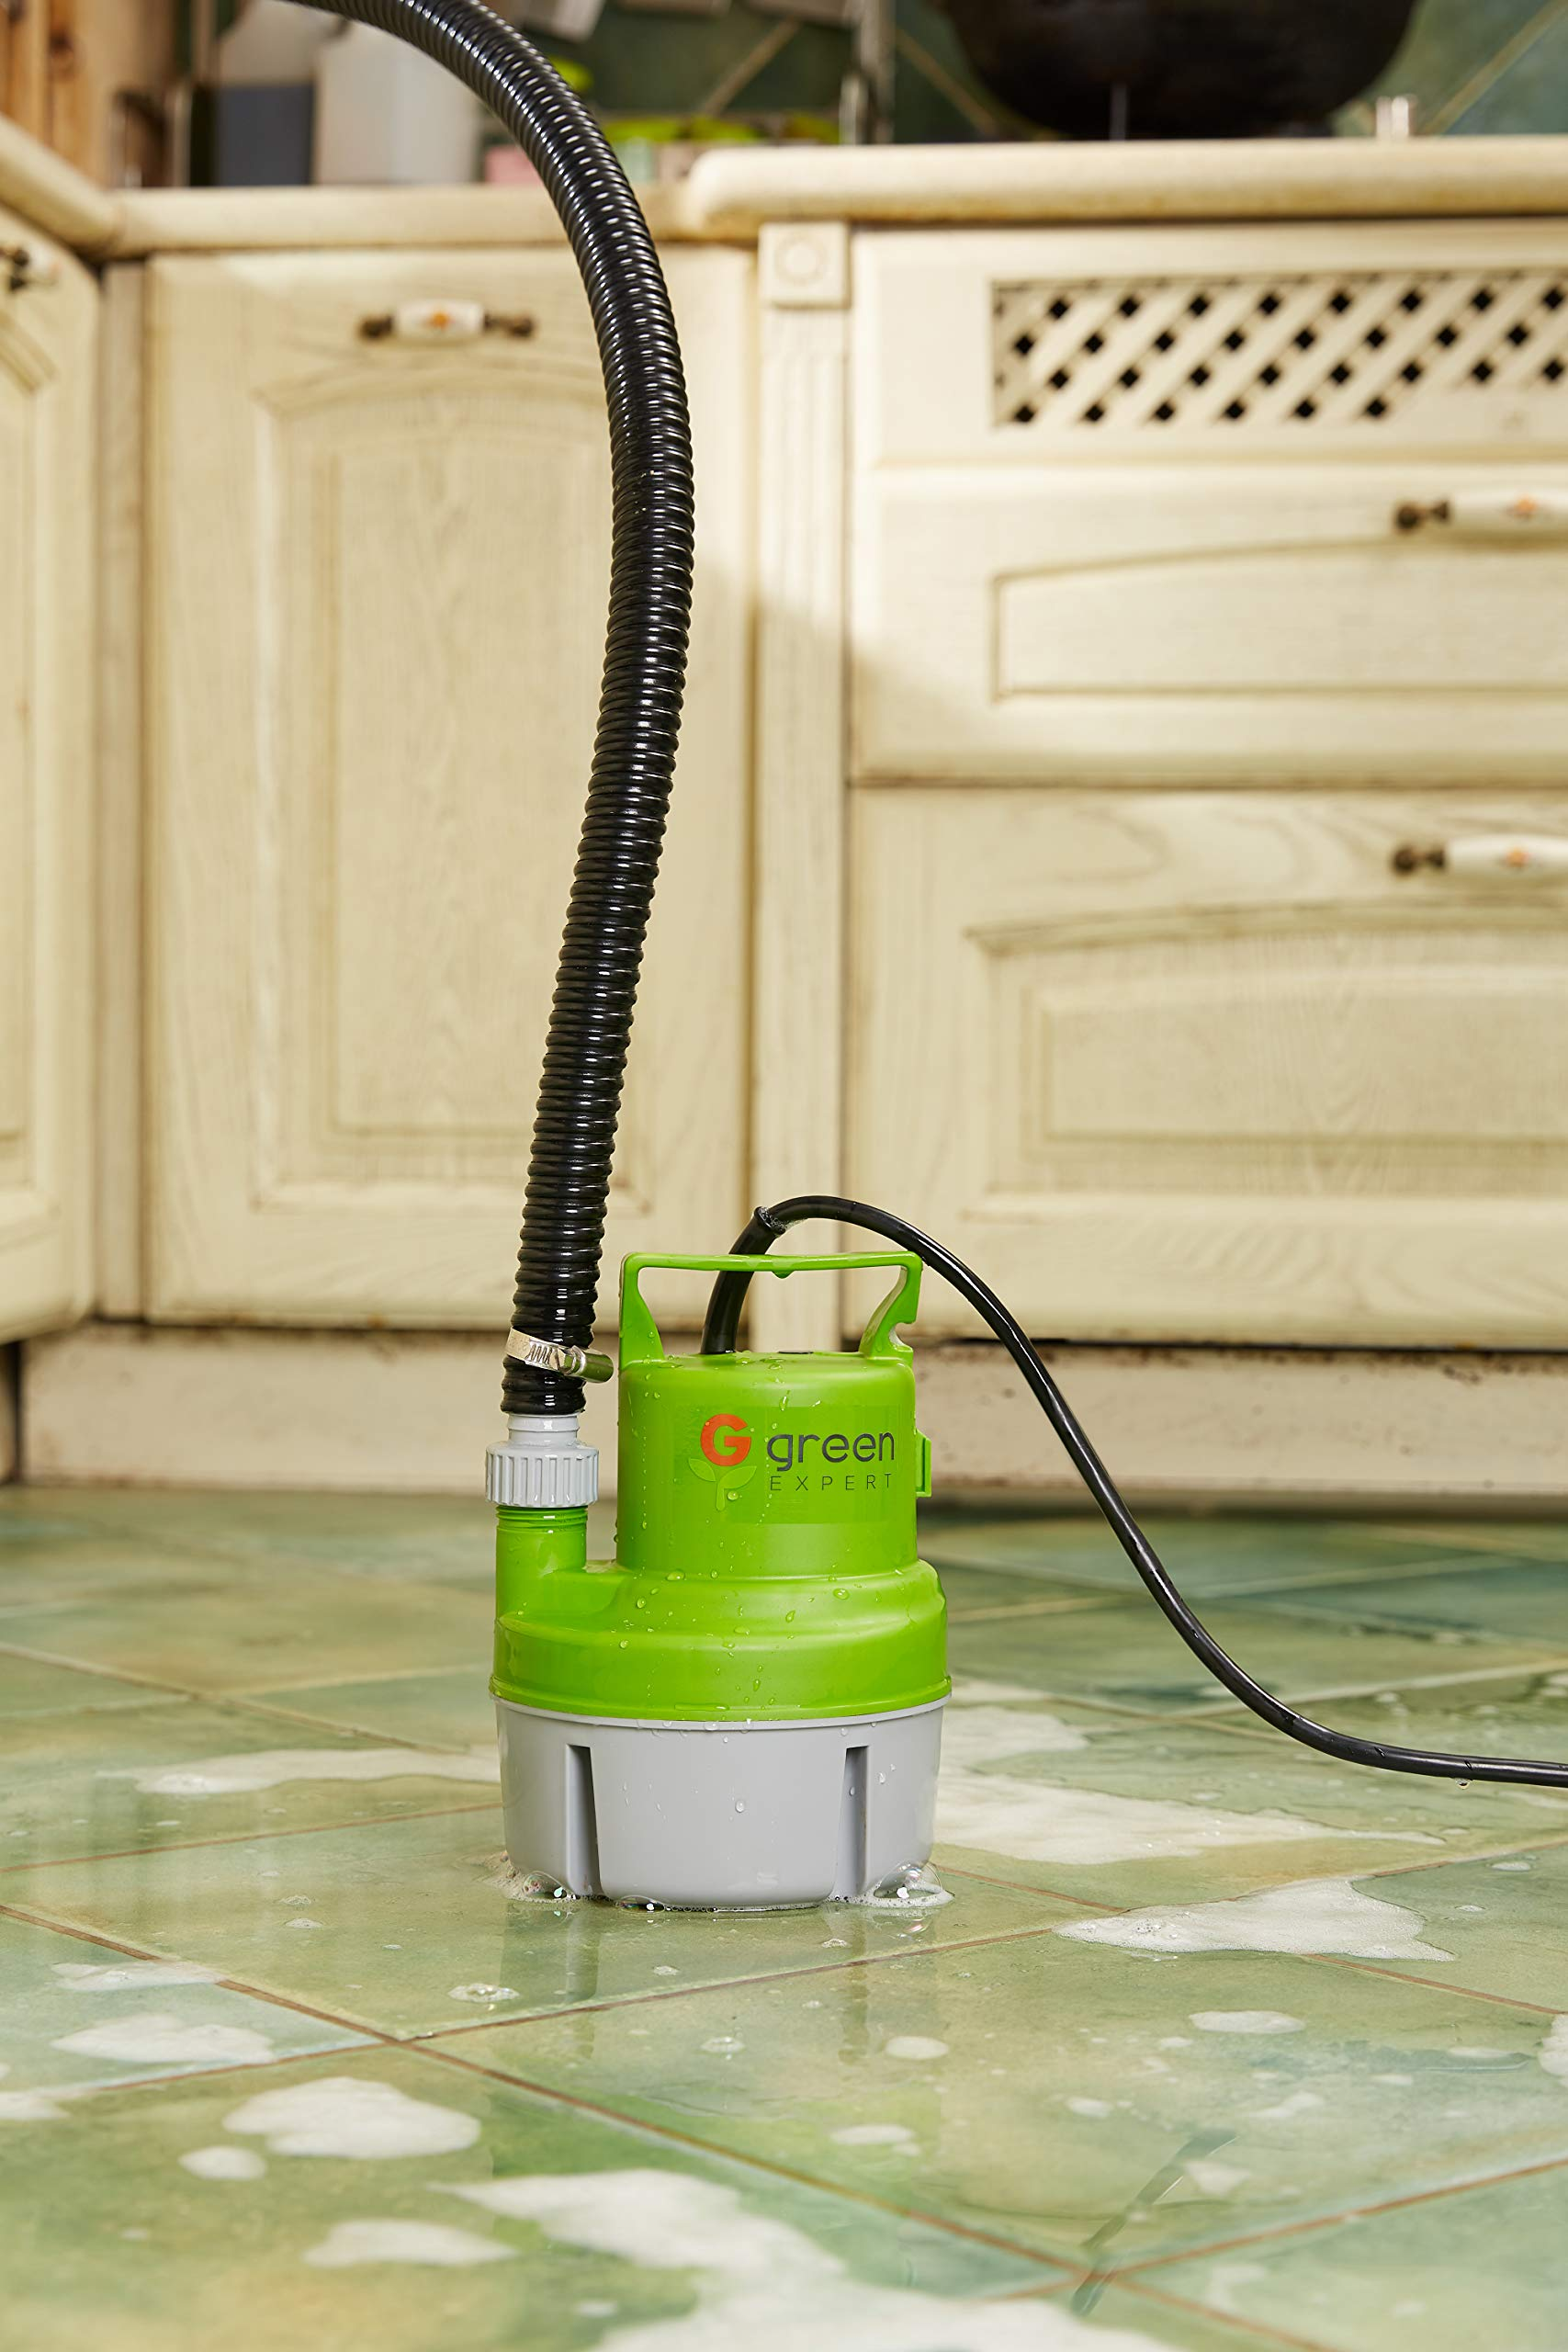 Green Expert 203617 1/6 HP Portable Submersible Utility Pump with 1056 GPH Flow Efficiently for Water Removal Basement Flood Drainage Pump with 3/4'' Adaptor Available for Standard Garden hose by G green EXPERT (Image #6)